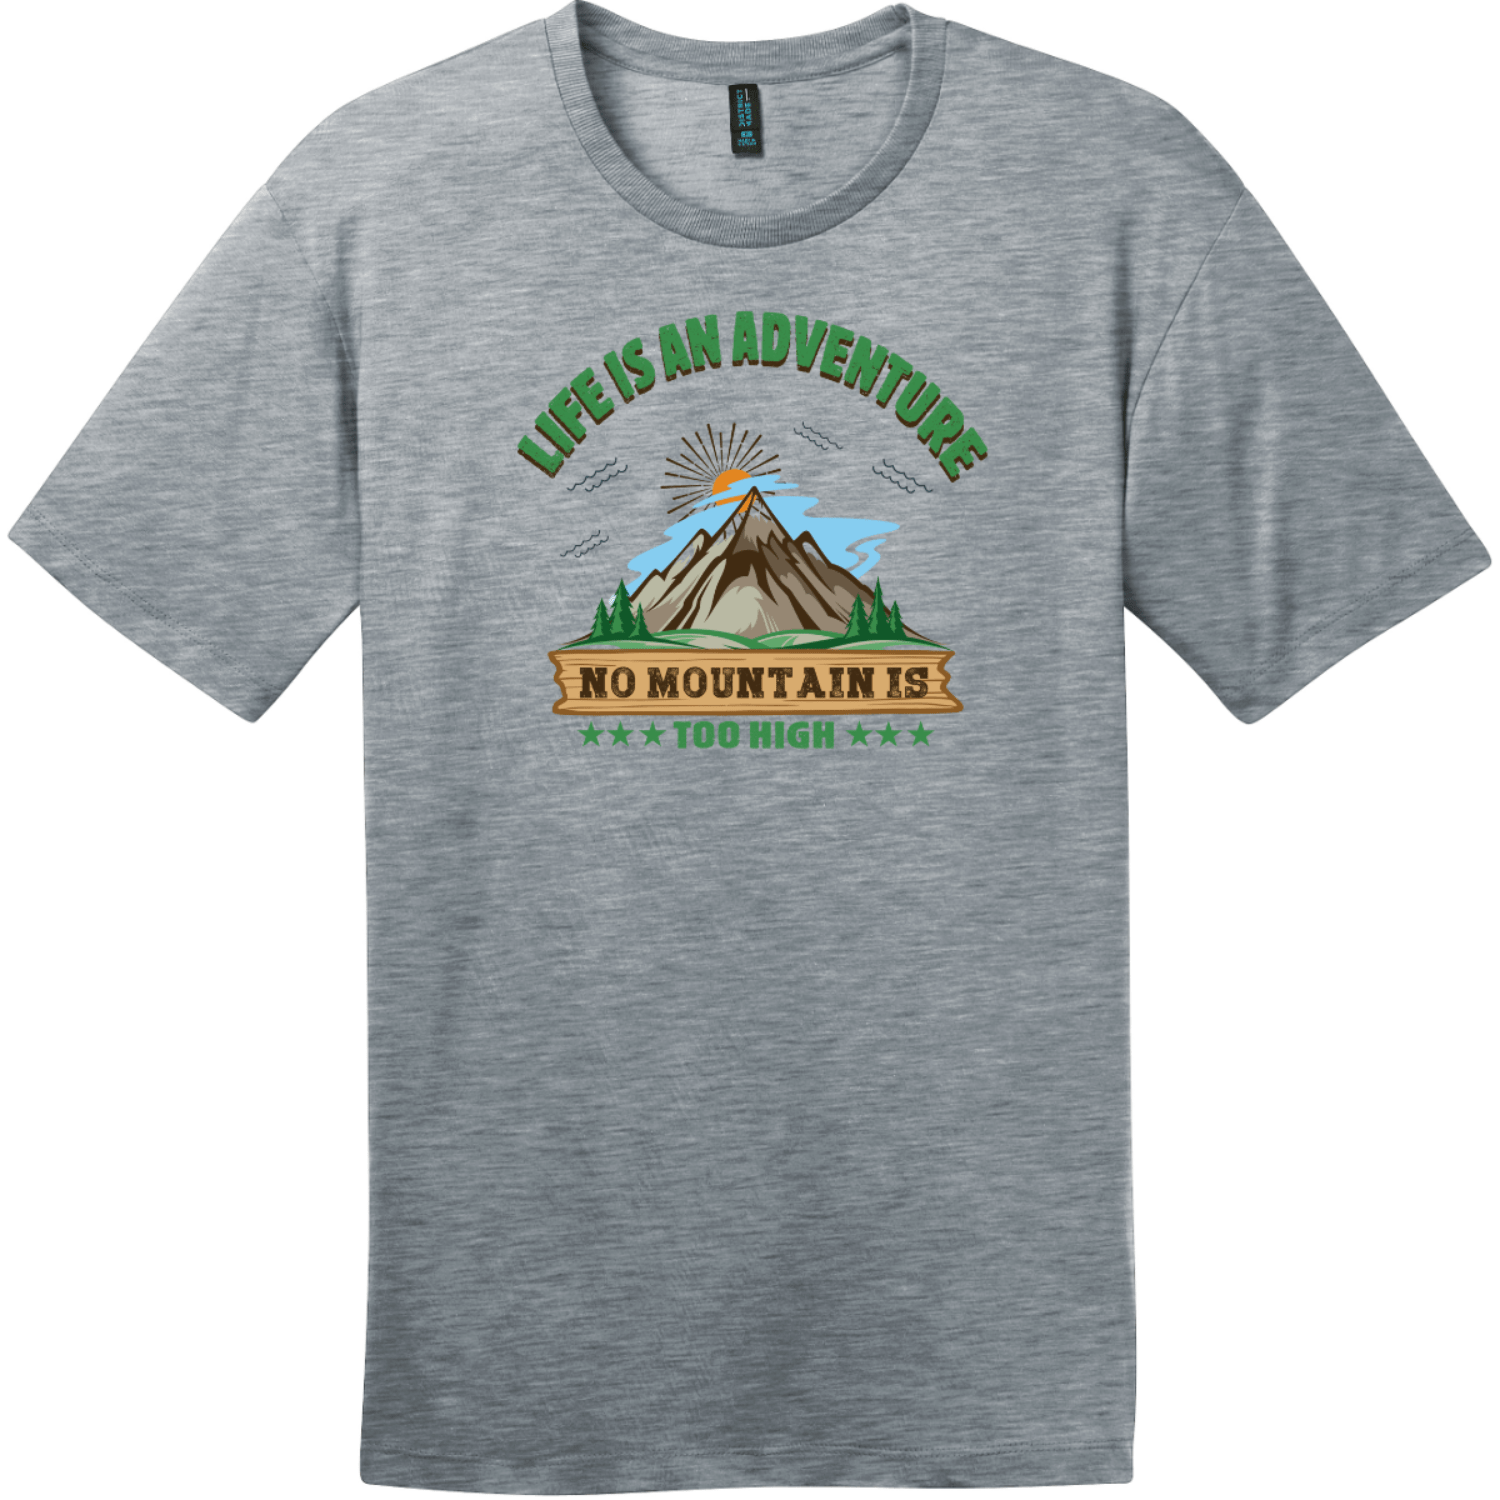 Life Is An Adventure No Mountain Too High T-Shirt Heathered Steel District Perfect Weight Tee DT104